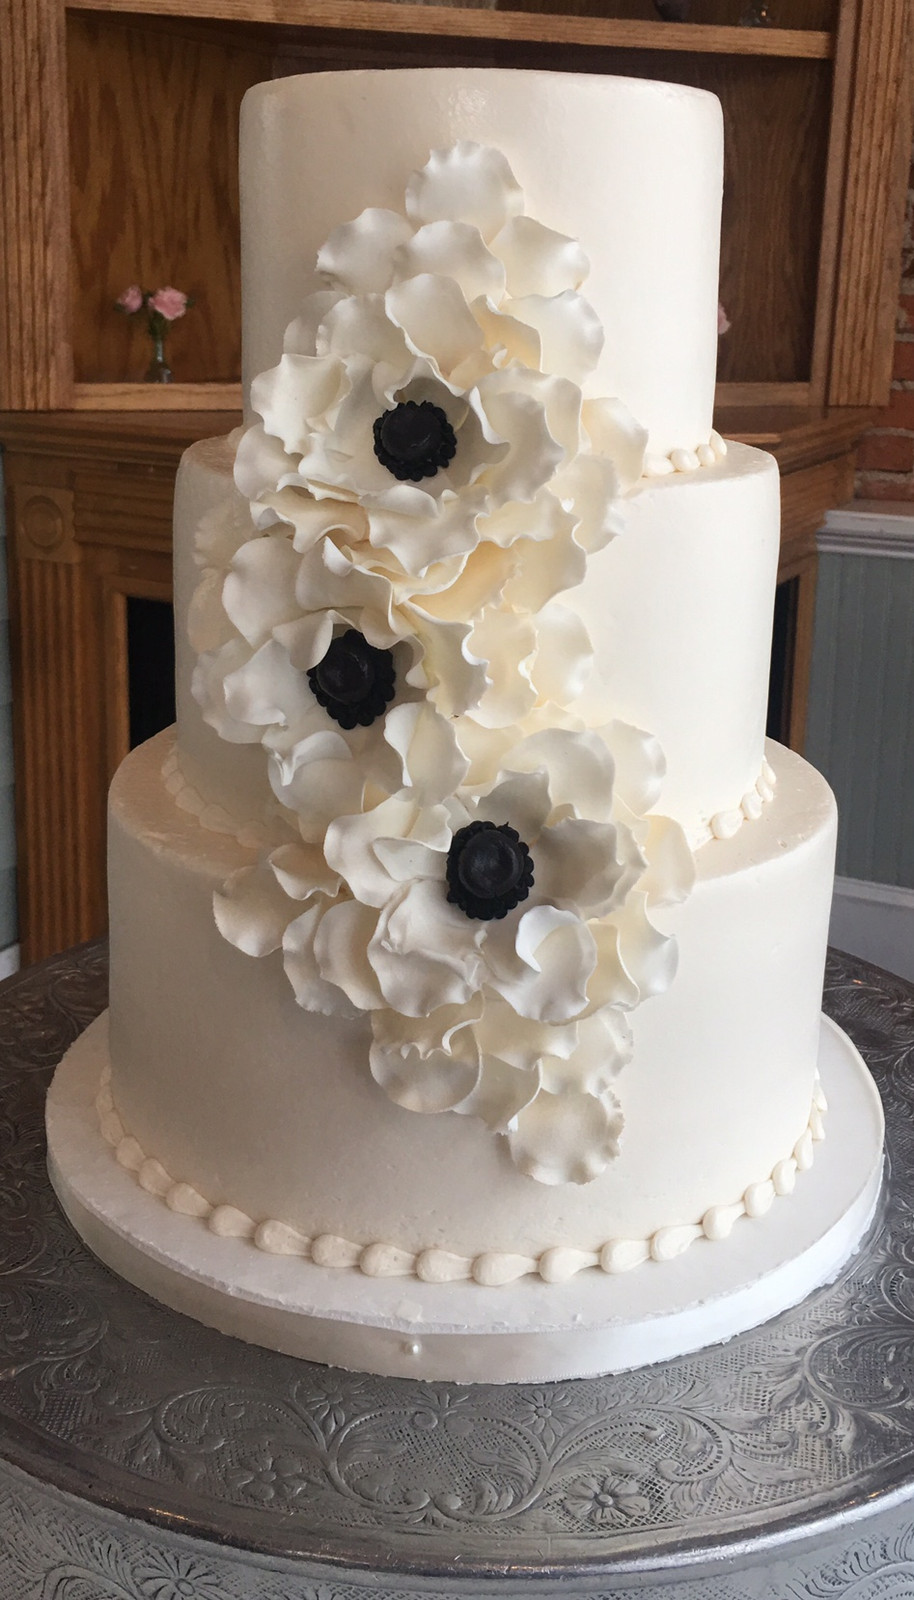 Marvelous Smooth White Buttercream Wedding Cake! Ruffled Gumpsaste Floral. Add Any  Personal Touch Or Changes To Any Of Our Award Winning Wedding Cake Designs.